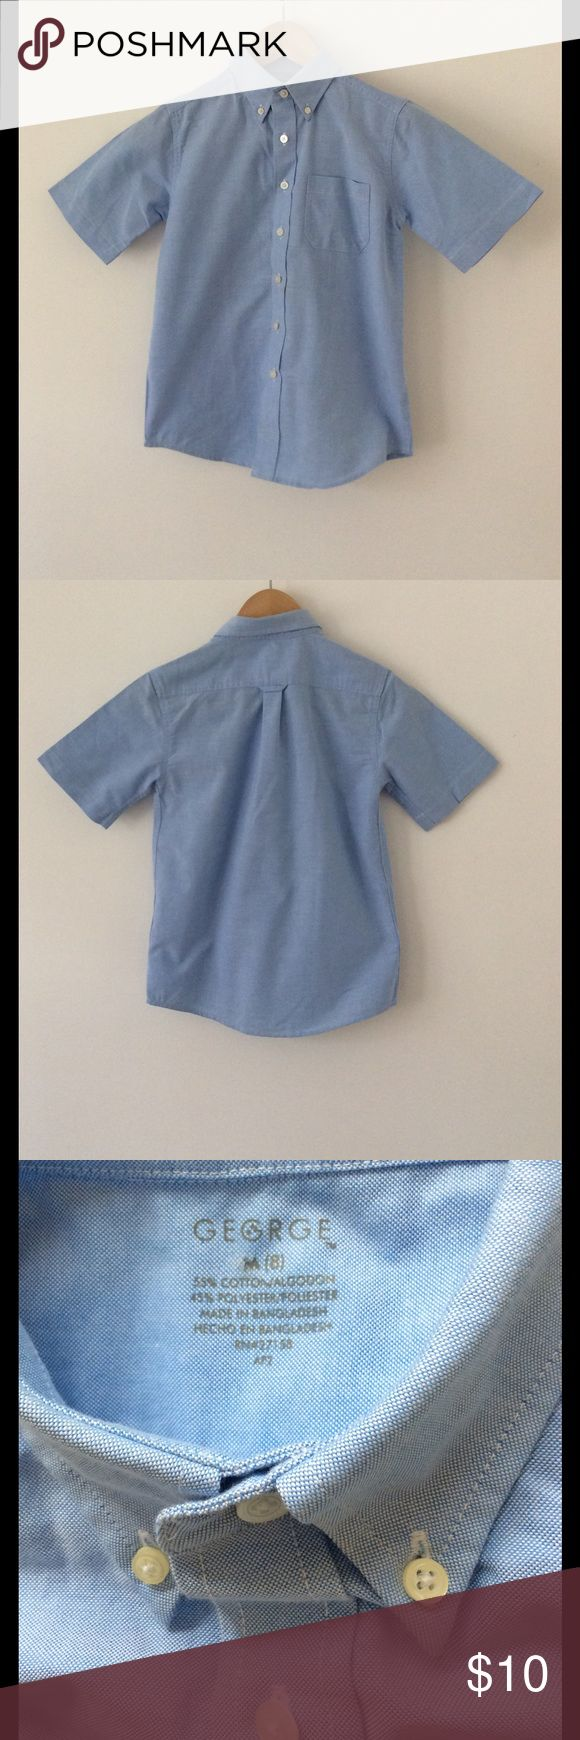 """Boys Short Sleeve Shirt - Size M (8) Wear for special occasions, with a school uniform or casual affair. Length: 20 1/4"""" (shoulder to hem) Width: 15 1/2"""" (underarm to underarm)   55% Cotton, 45% Polyester  Smoke Free Home George Shirts & Tops Button Down Shirts"""